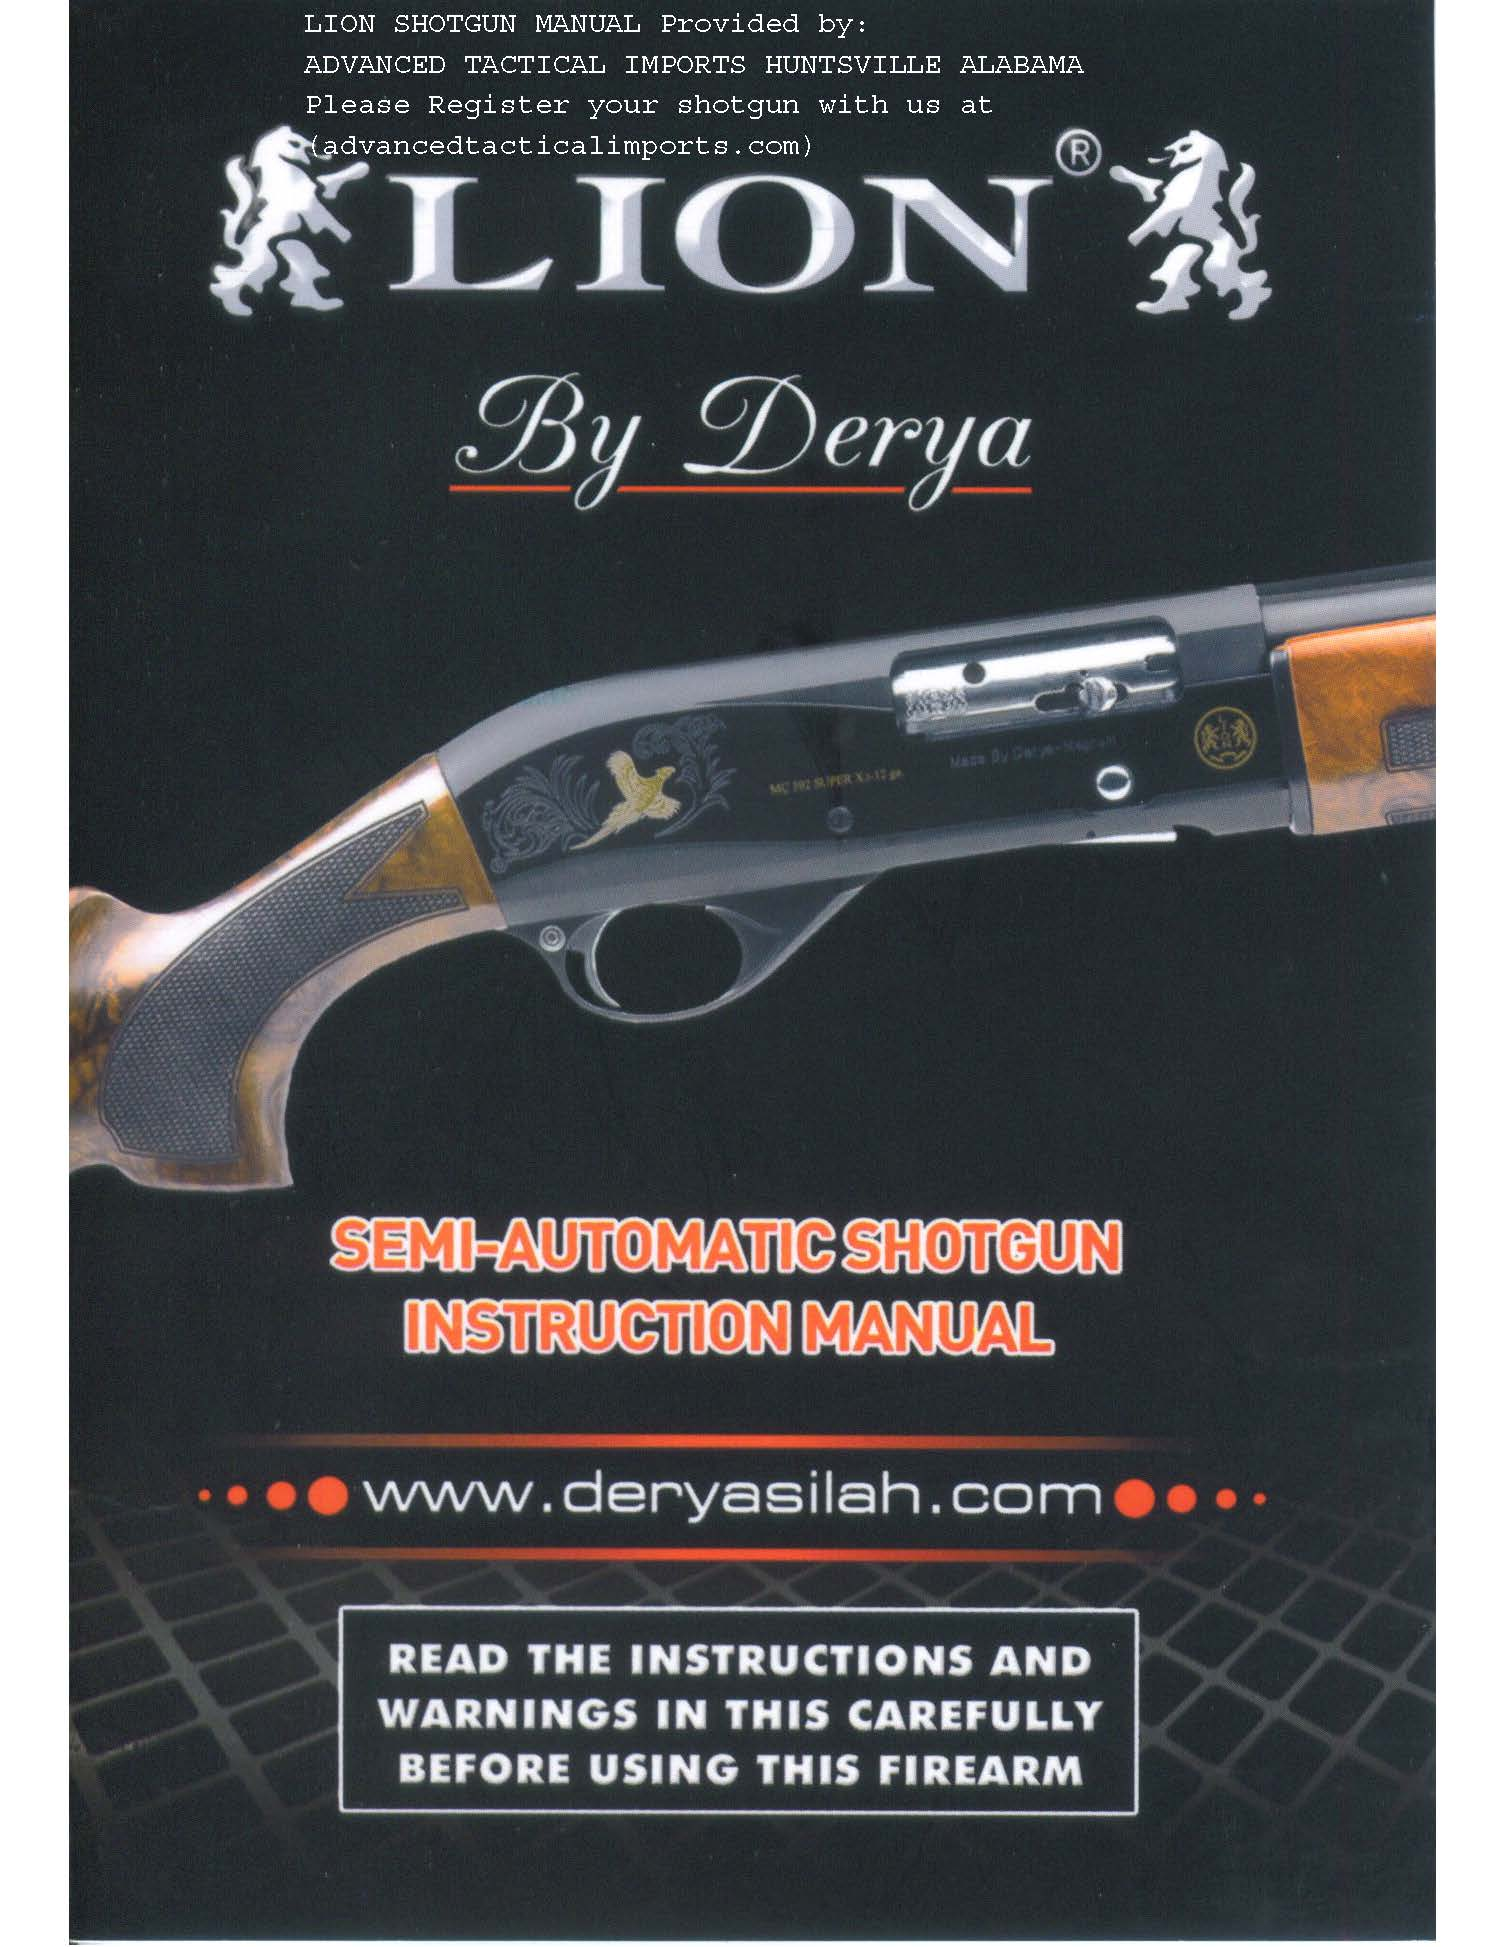 lion_manual_advanced_tactical_imports_huntsville_al_page_01